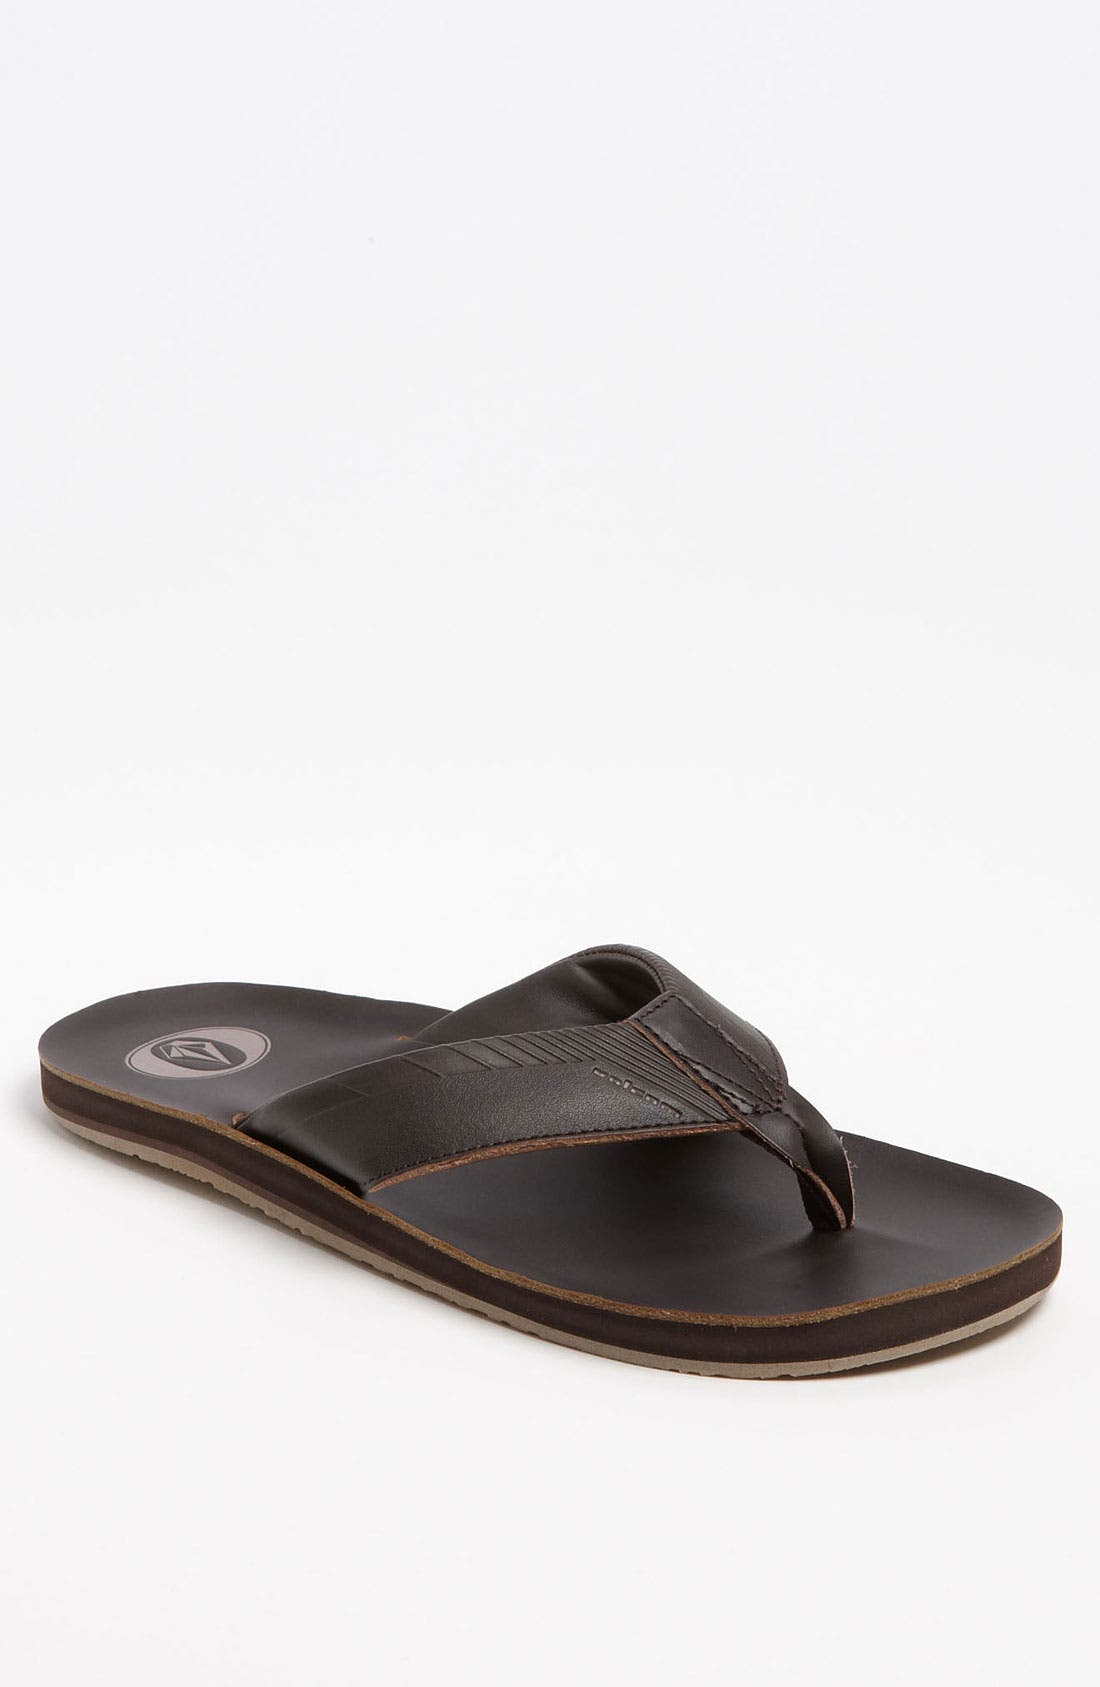 Alternate Image 1 Selected - Volcom 'Creedlers - Lector' Flip Flop